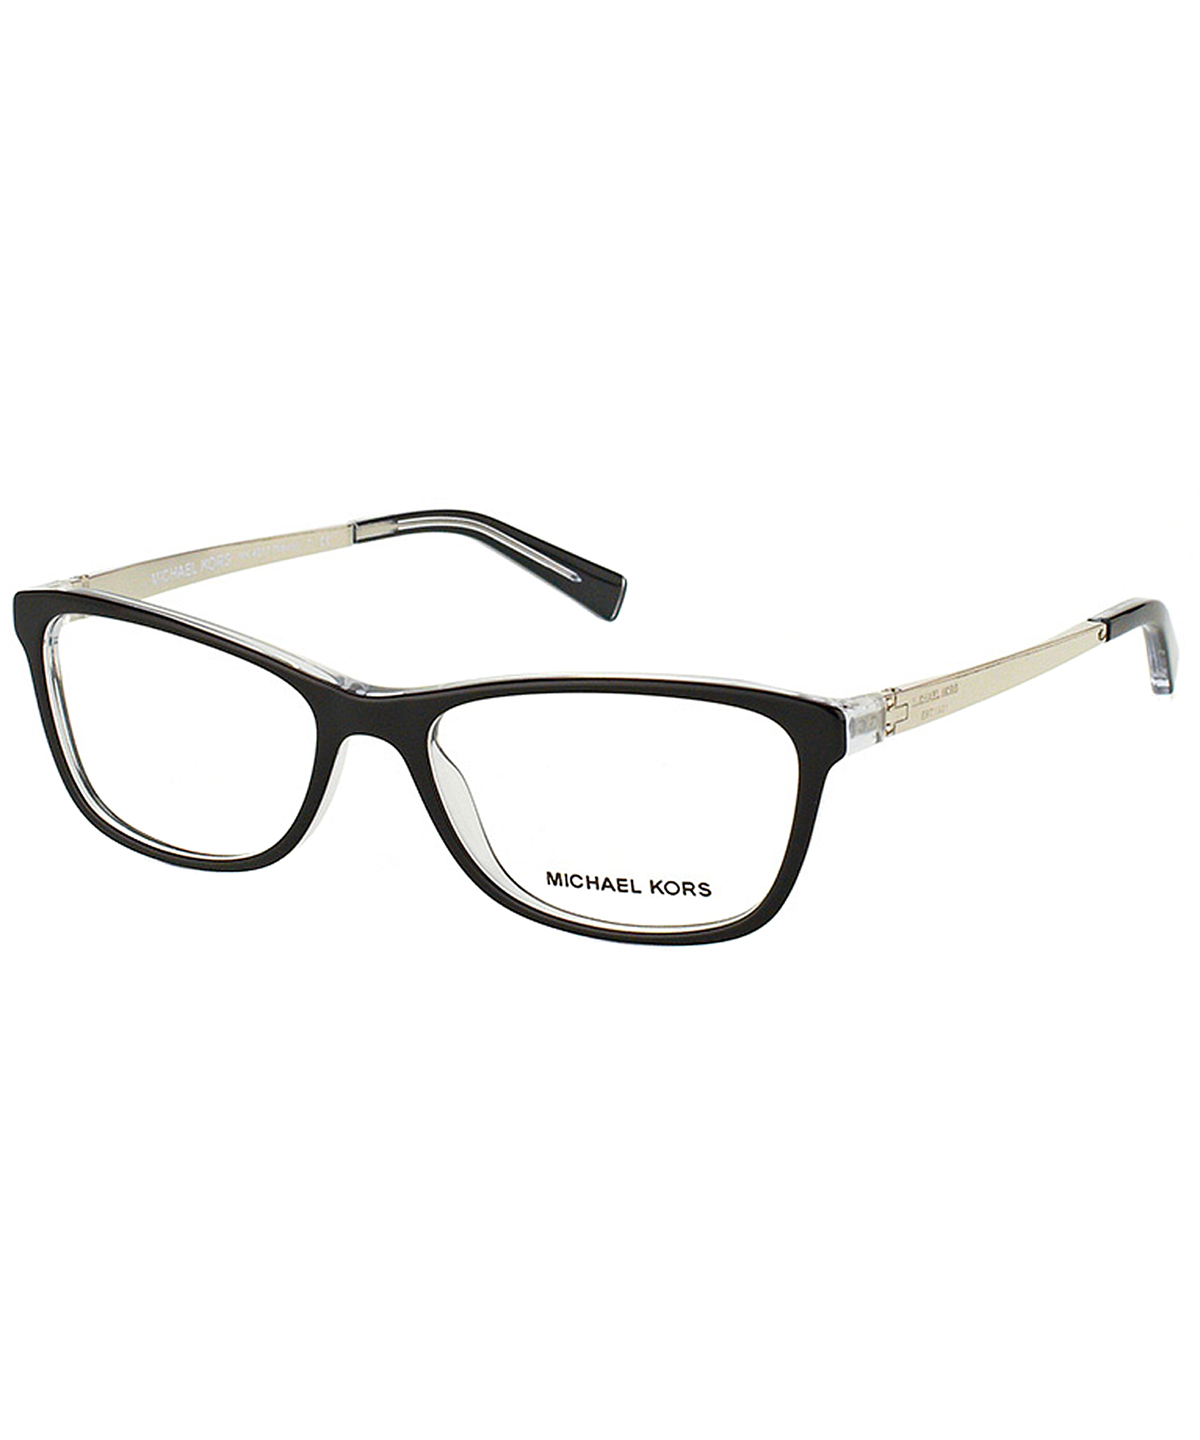 MICHAEL KORS SQUARE PLASTIC EYEGLASSES\'. #michaelkors #sunglasses ...